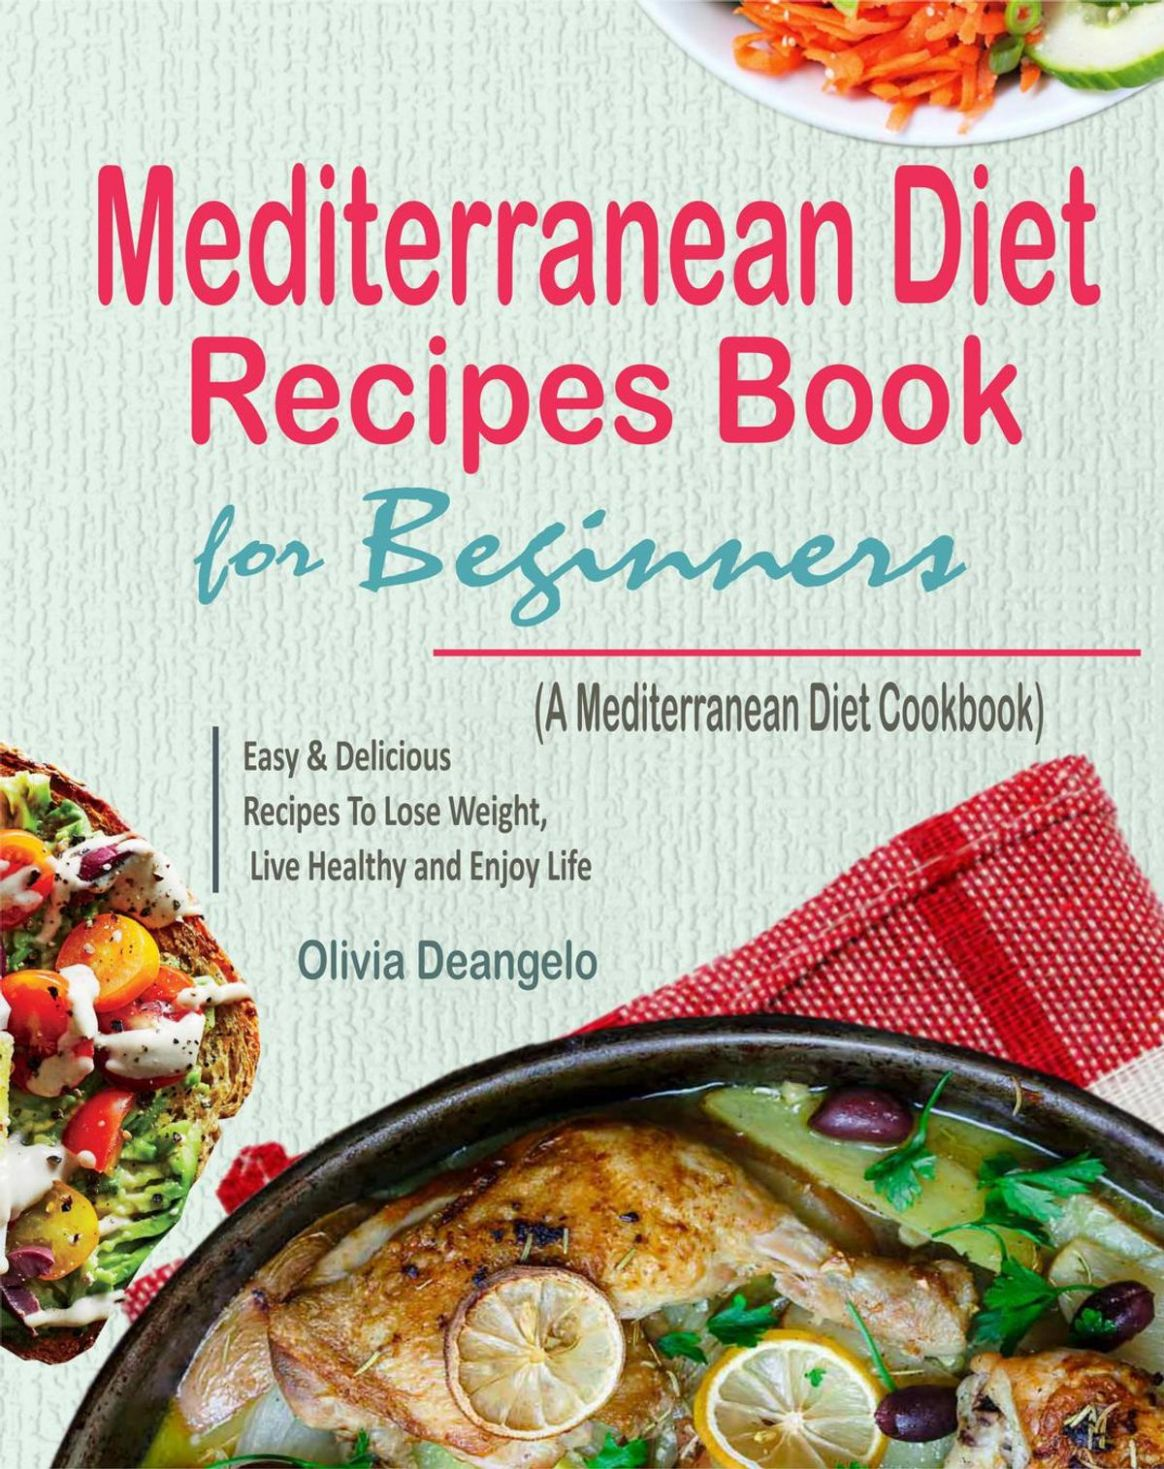 Mediterranean Diet Recipes Book For Beginners: with Easy & Delicious  Recipes To Lose Weight, Live Healthy and Enjoy Life (A Mediterranean Diet  ..